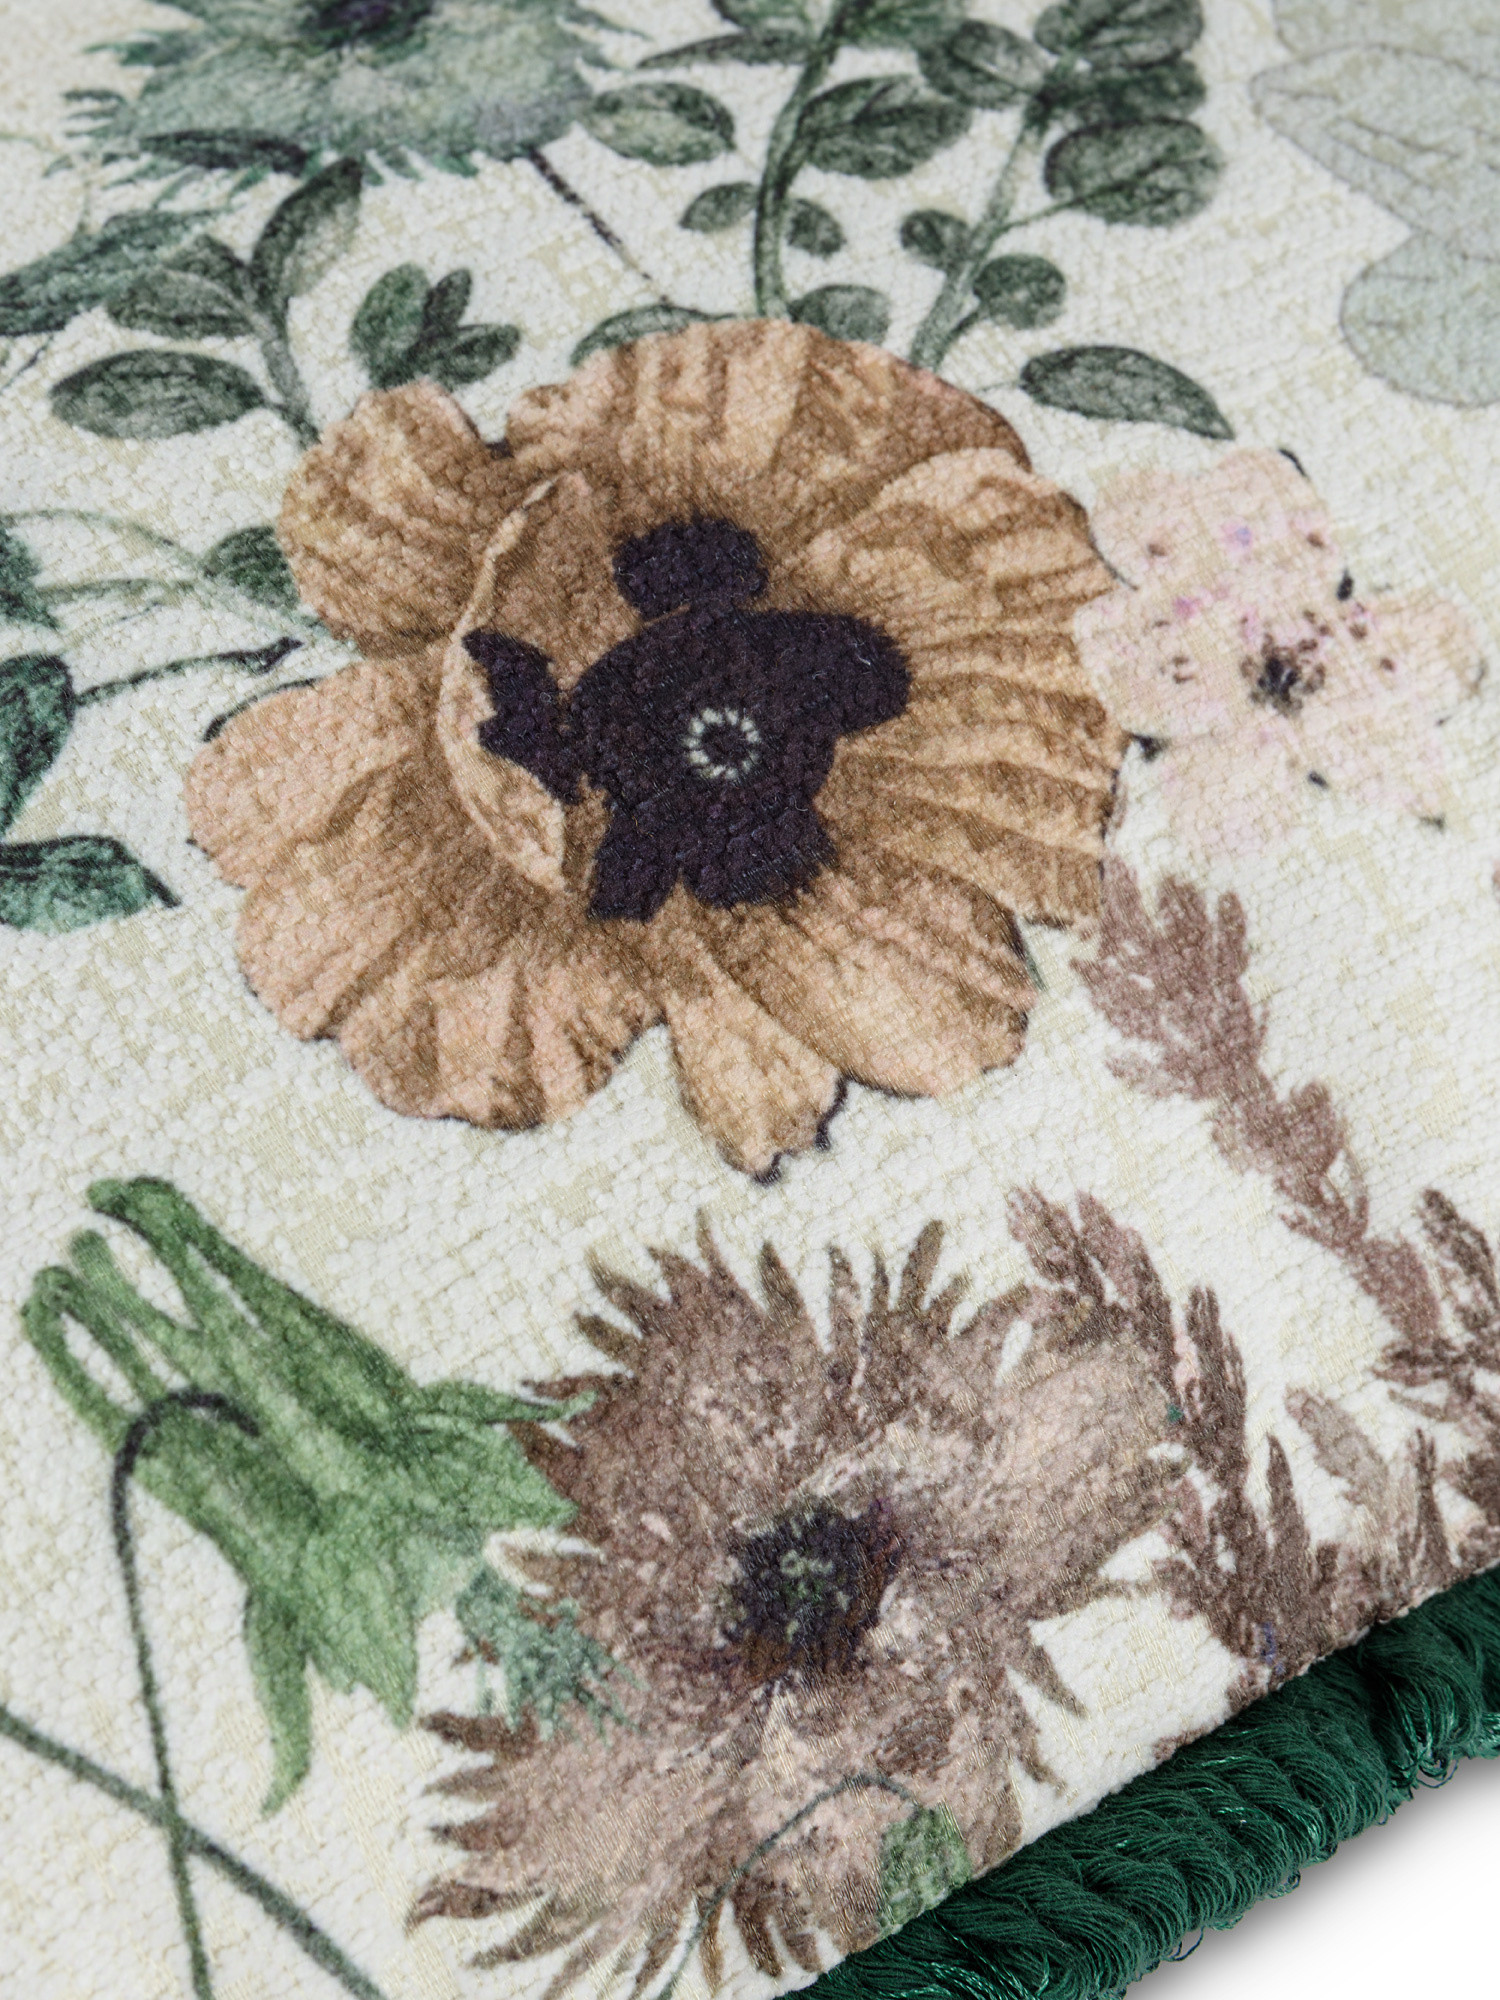 Cuscino velluto stampa floreale 35x55cm, Multicolor, large image number 2